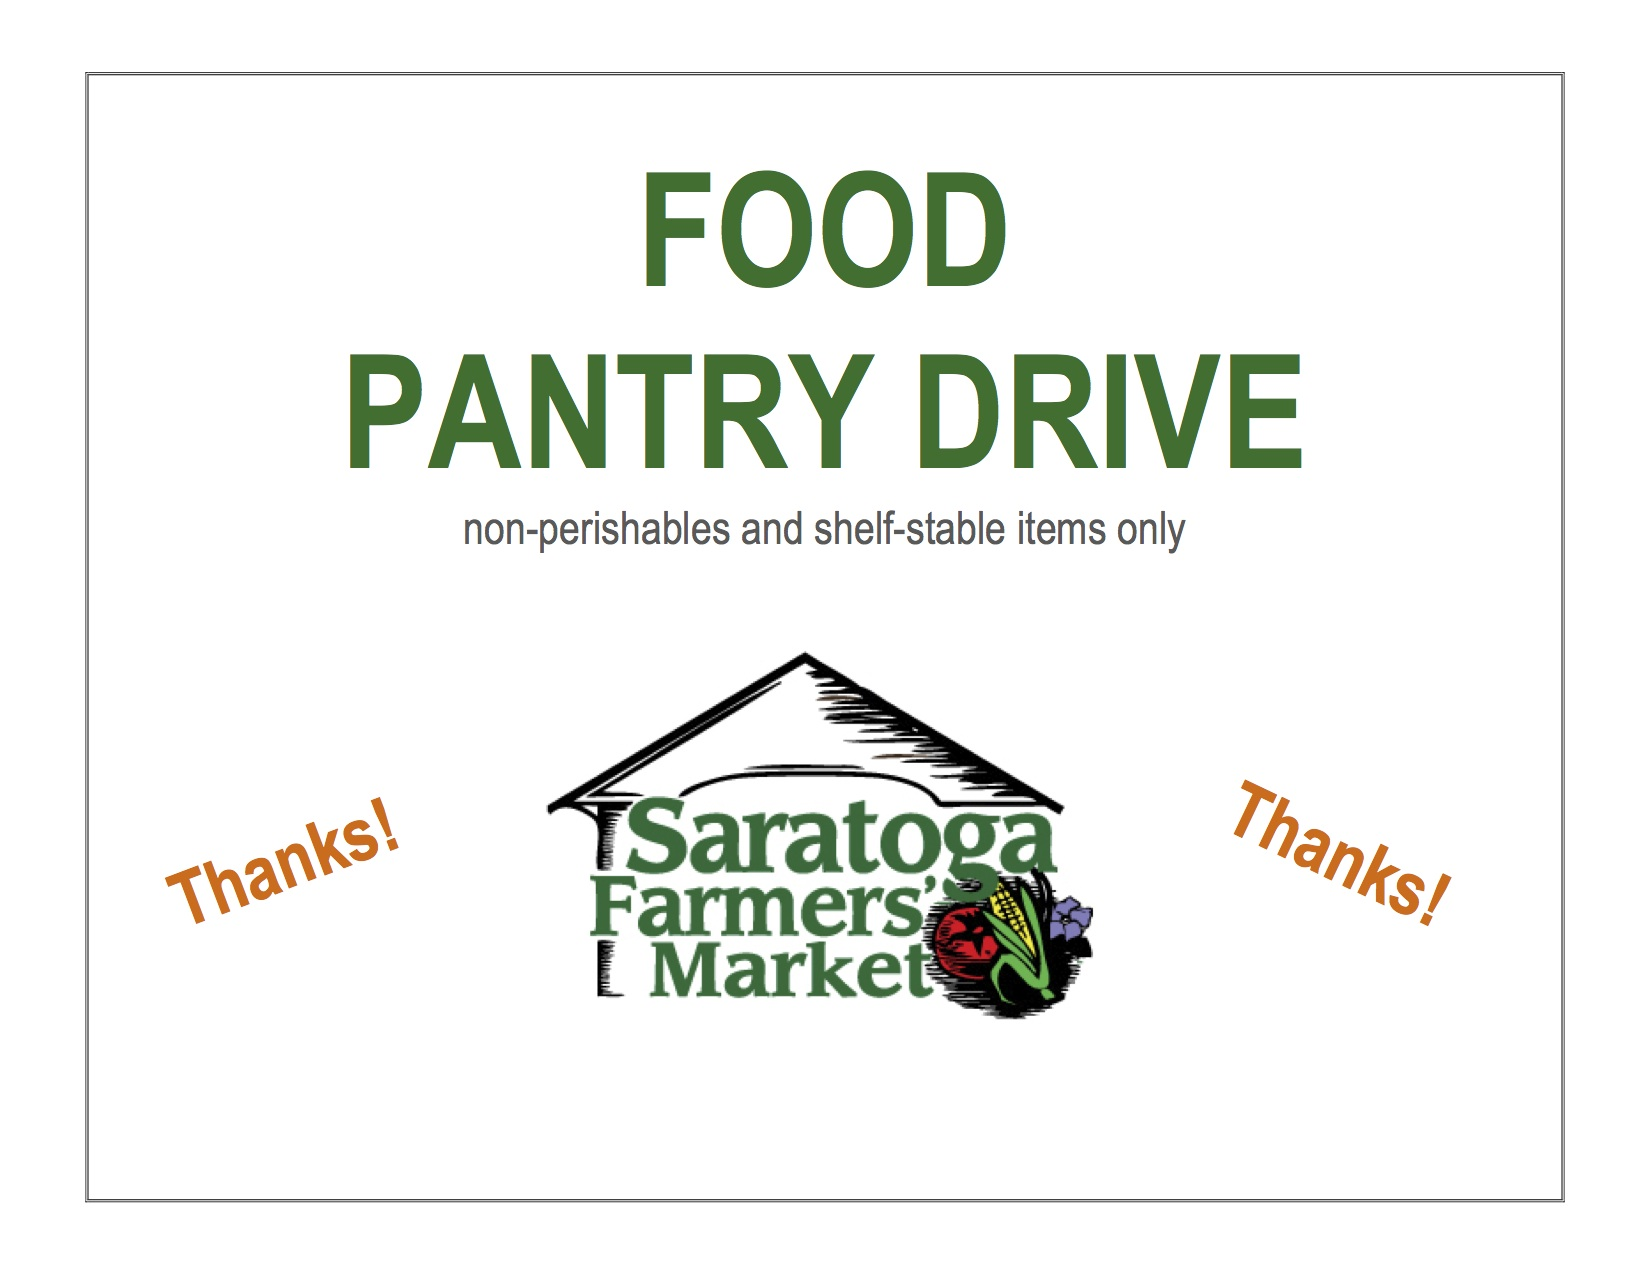 Market Collecting Food Pantry Donations